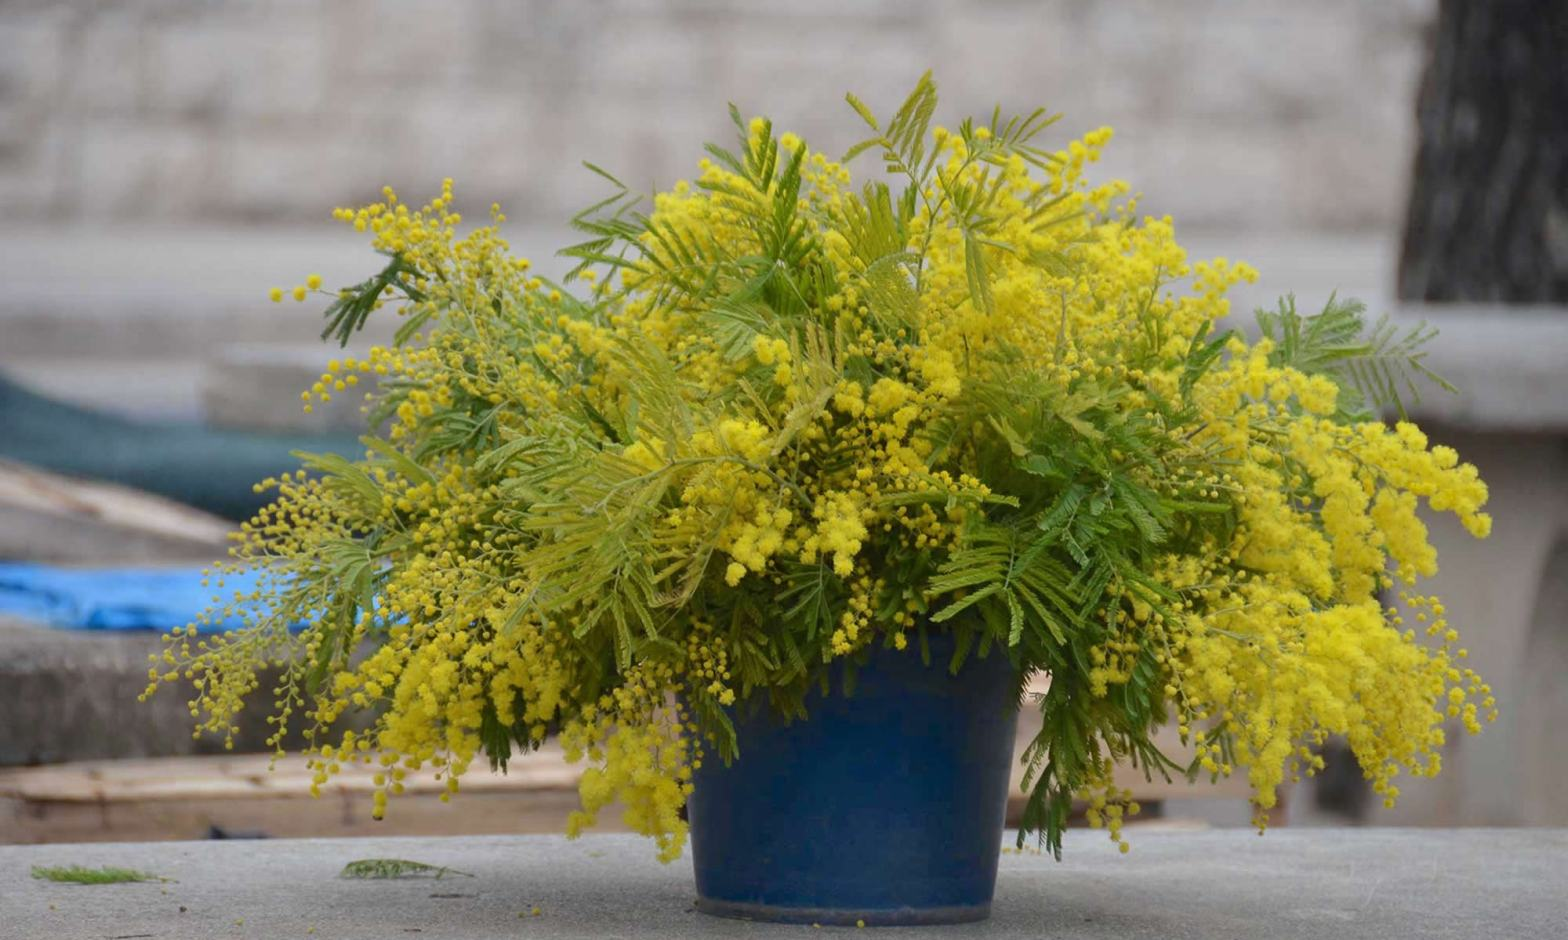 A blue bucket filled with yellow mimosa flowers sits at a fresh market in Croatia. The flower is associated with International Women's Day celebrations.